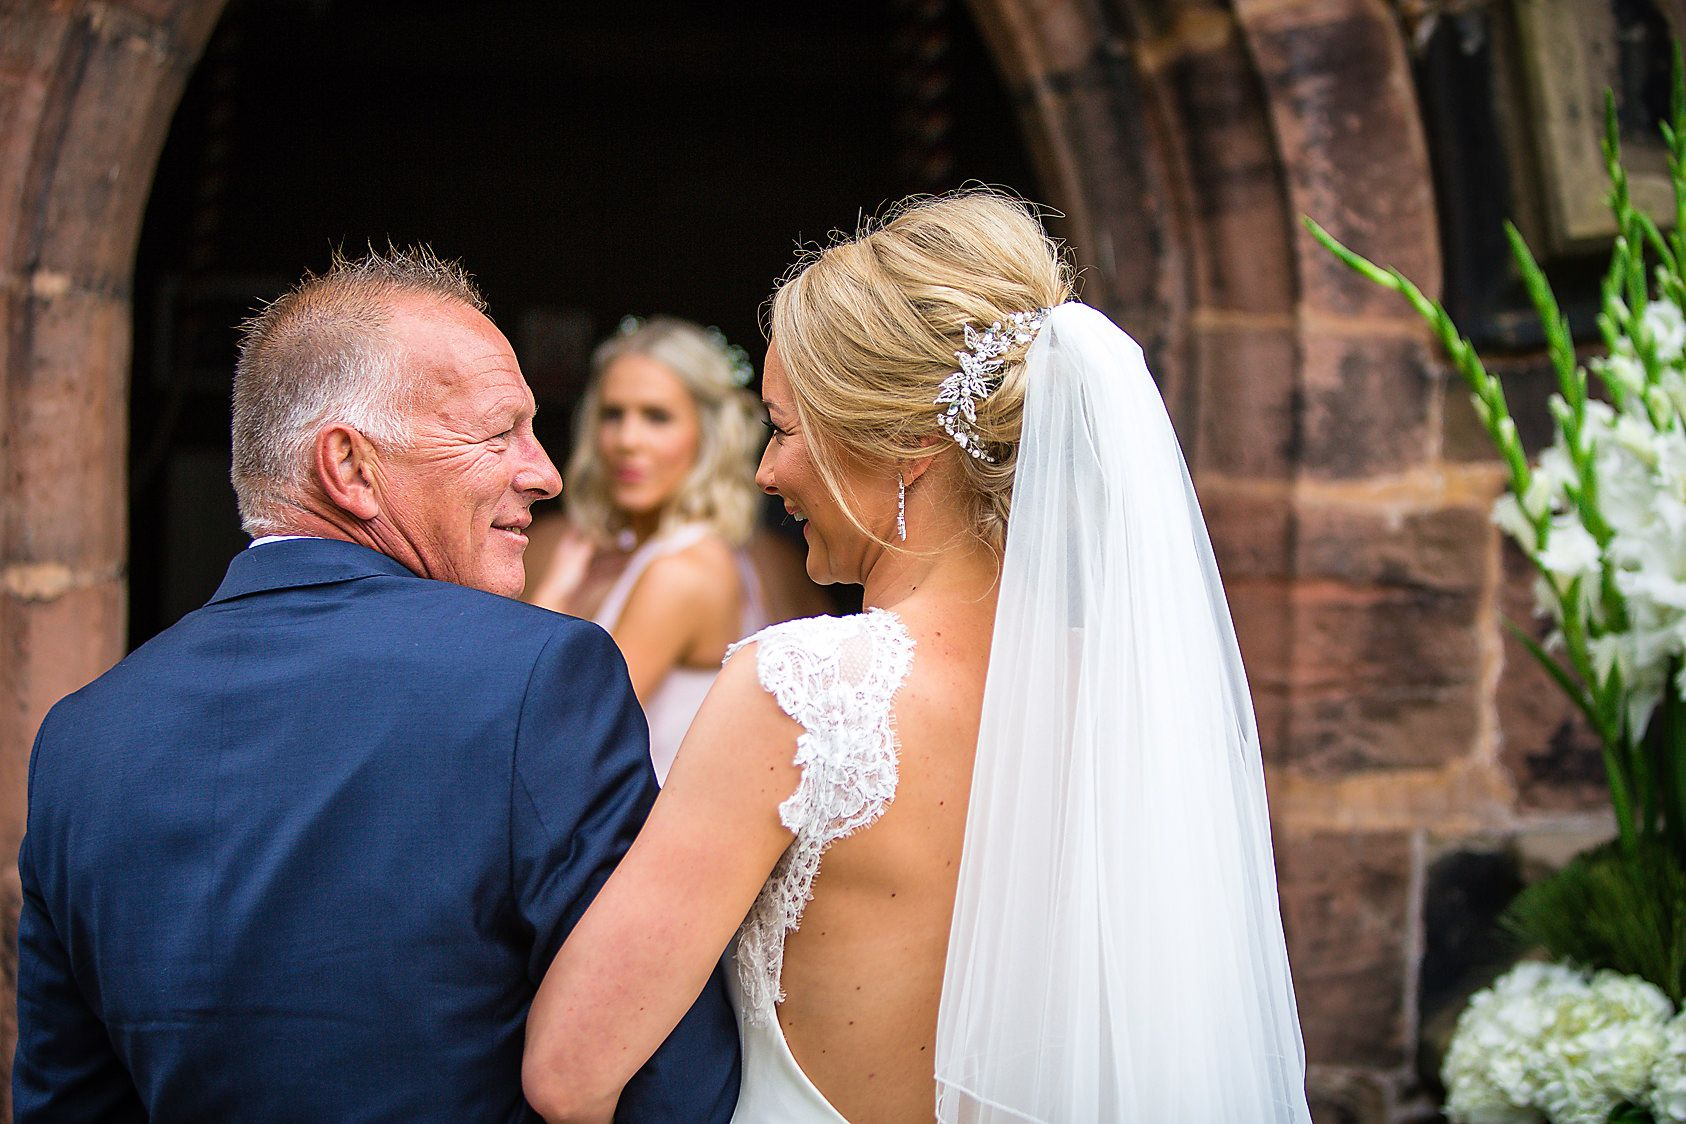 Father of brides looks proudly at his daughter, watched by bridesmaids at the church entrance